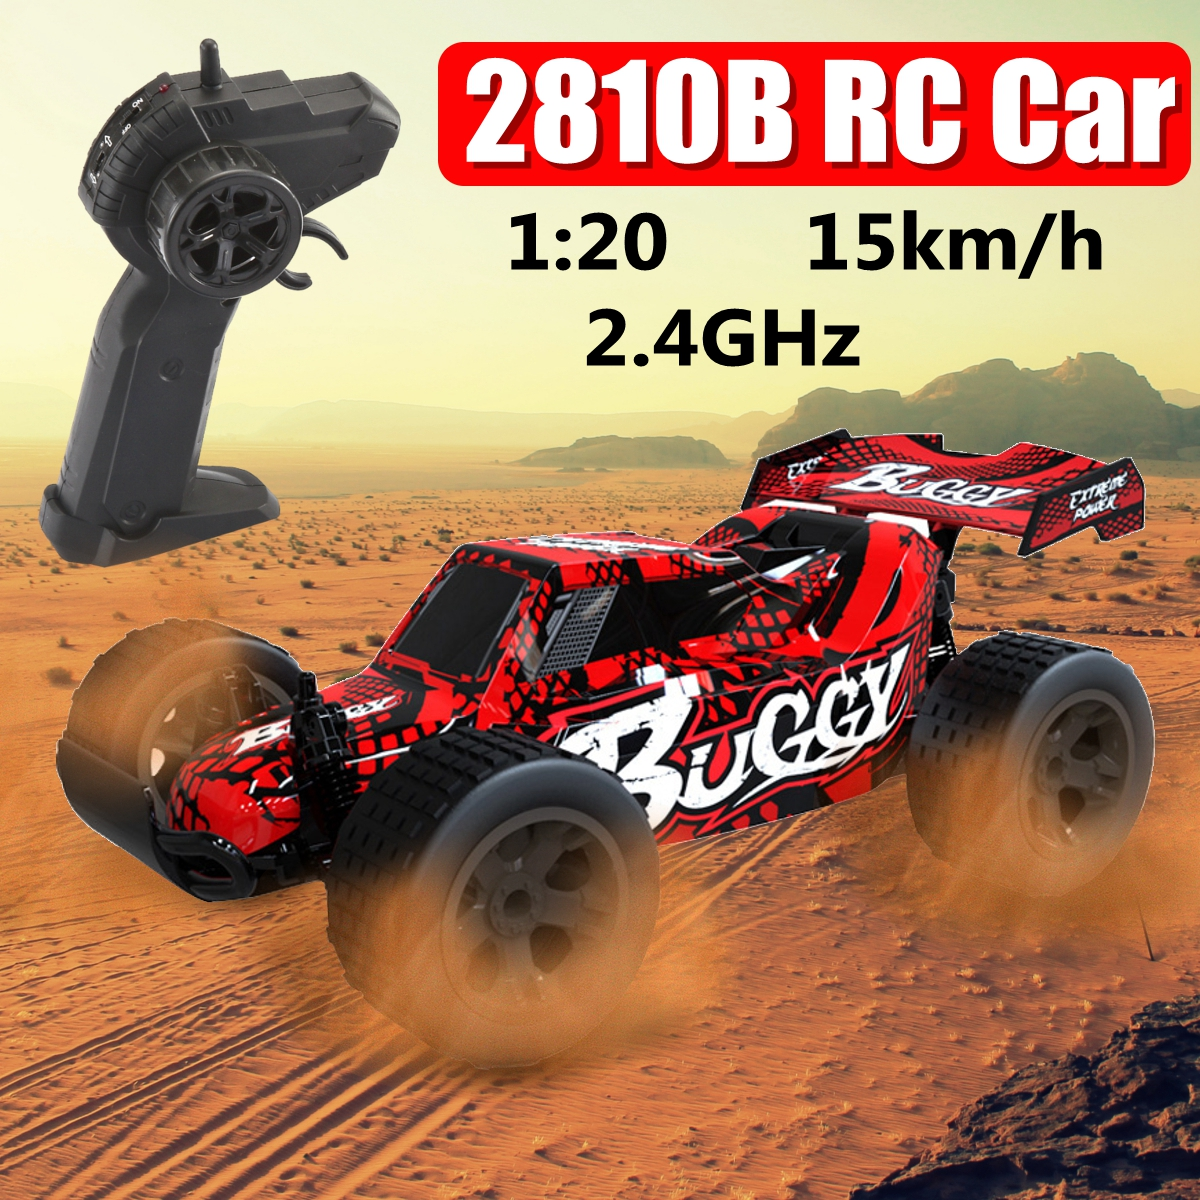 1:20 2.4GHz 4WD High Speed Radio Fast Remote Control RC Car RTR Racing buggy Car Off Road Toy For Children Gift,Red